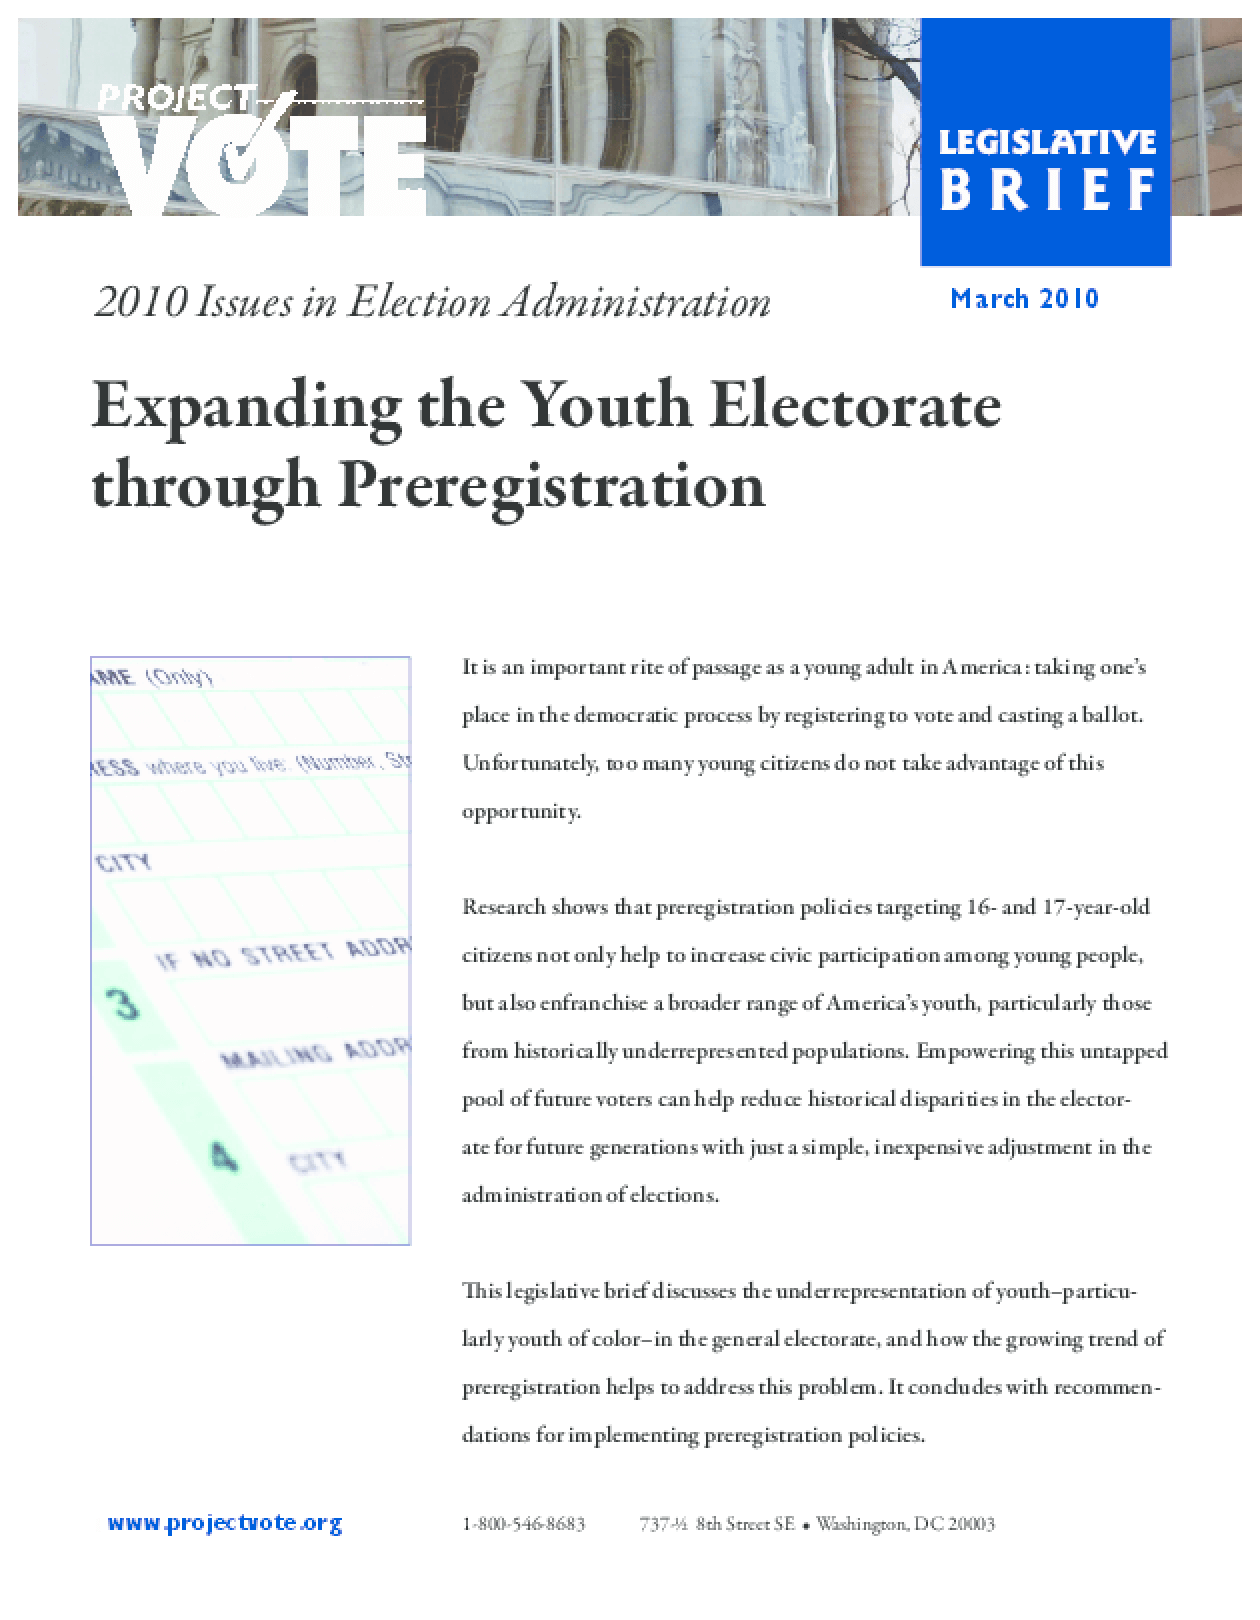 Expanding the Youth Electorate through Preregistration